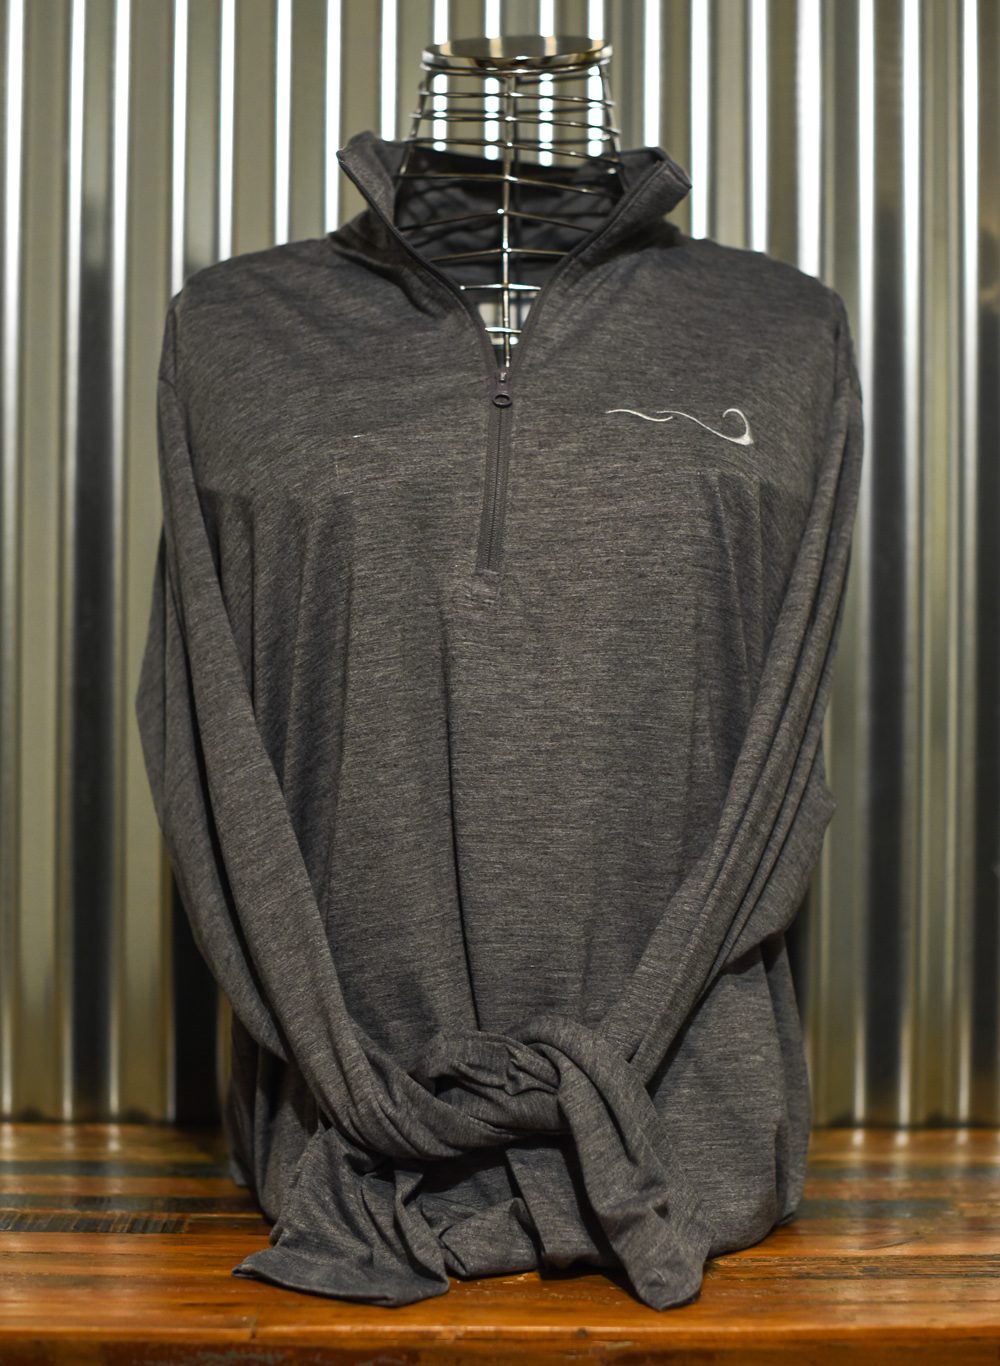 Gray Men's Quarter Zip back embroidered front and back. Front view